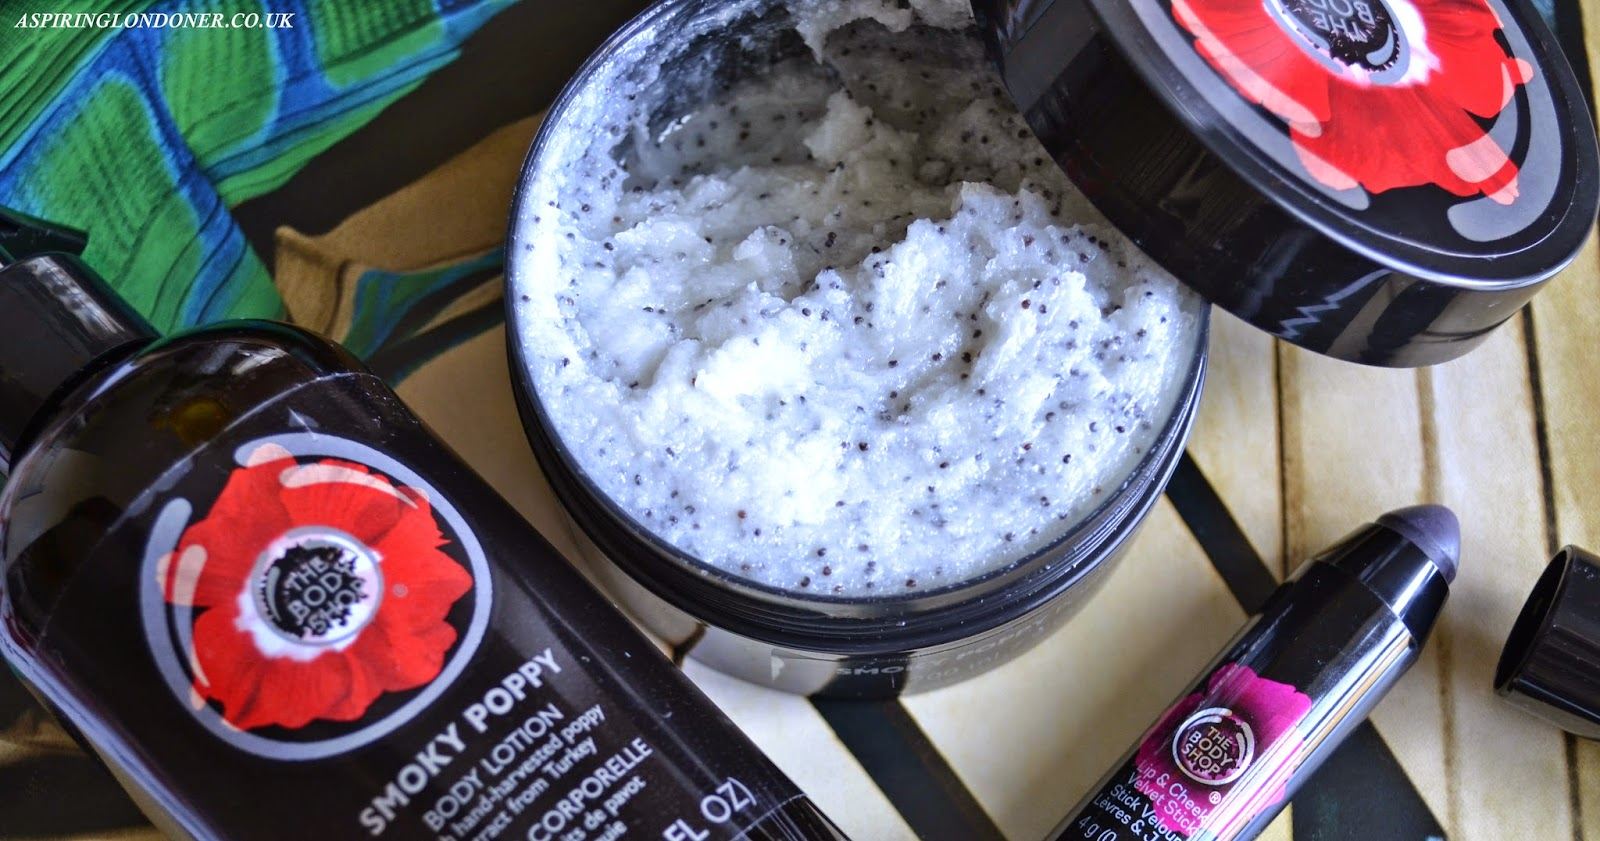 The Body Shop Smoky Poppy Range Review - Aspiring Londoner